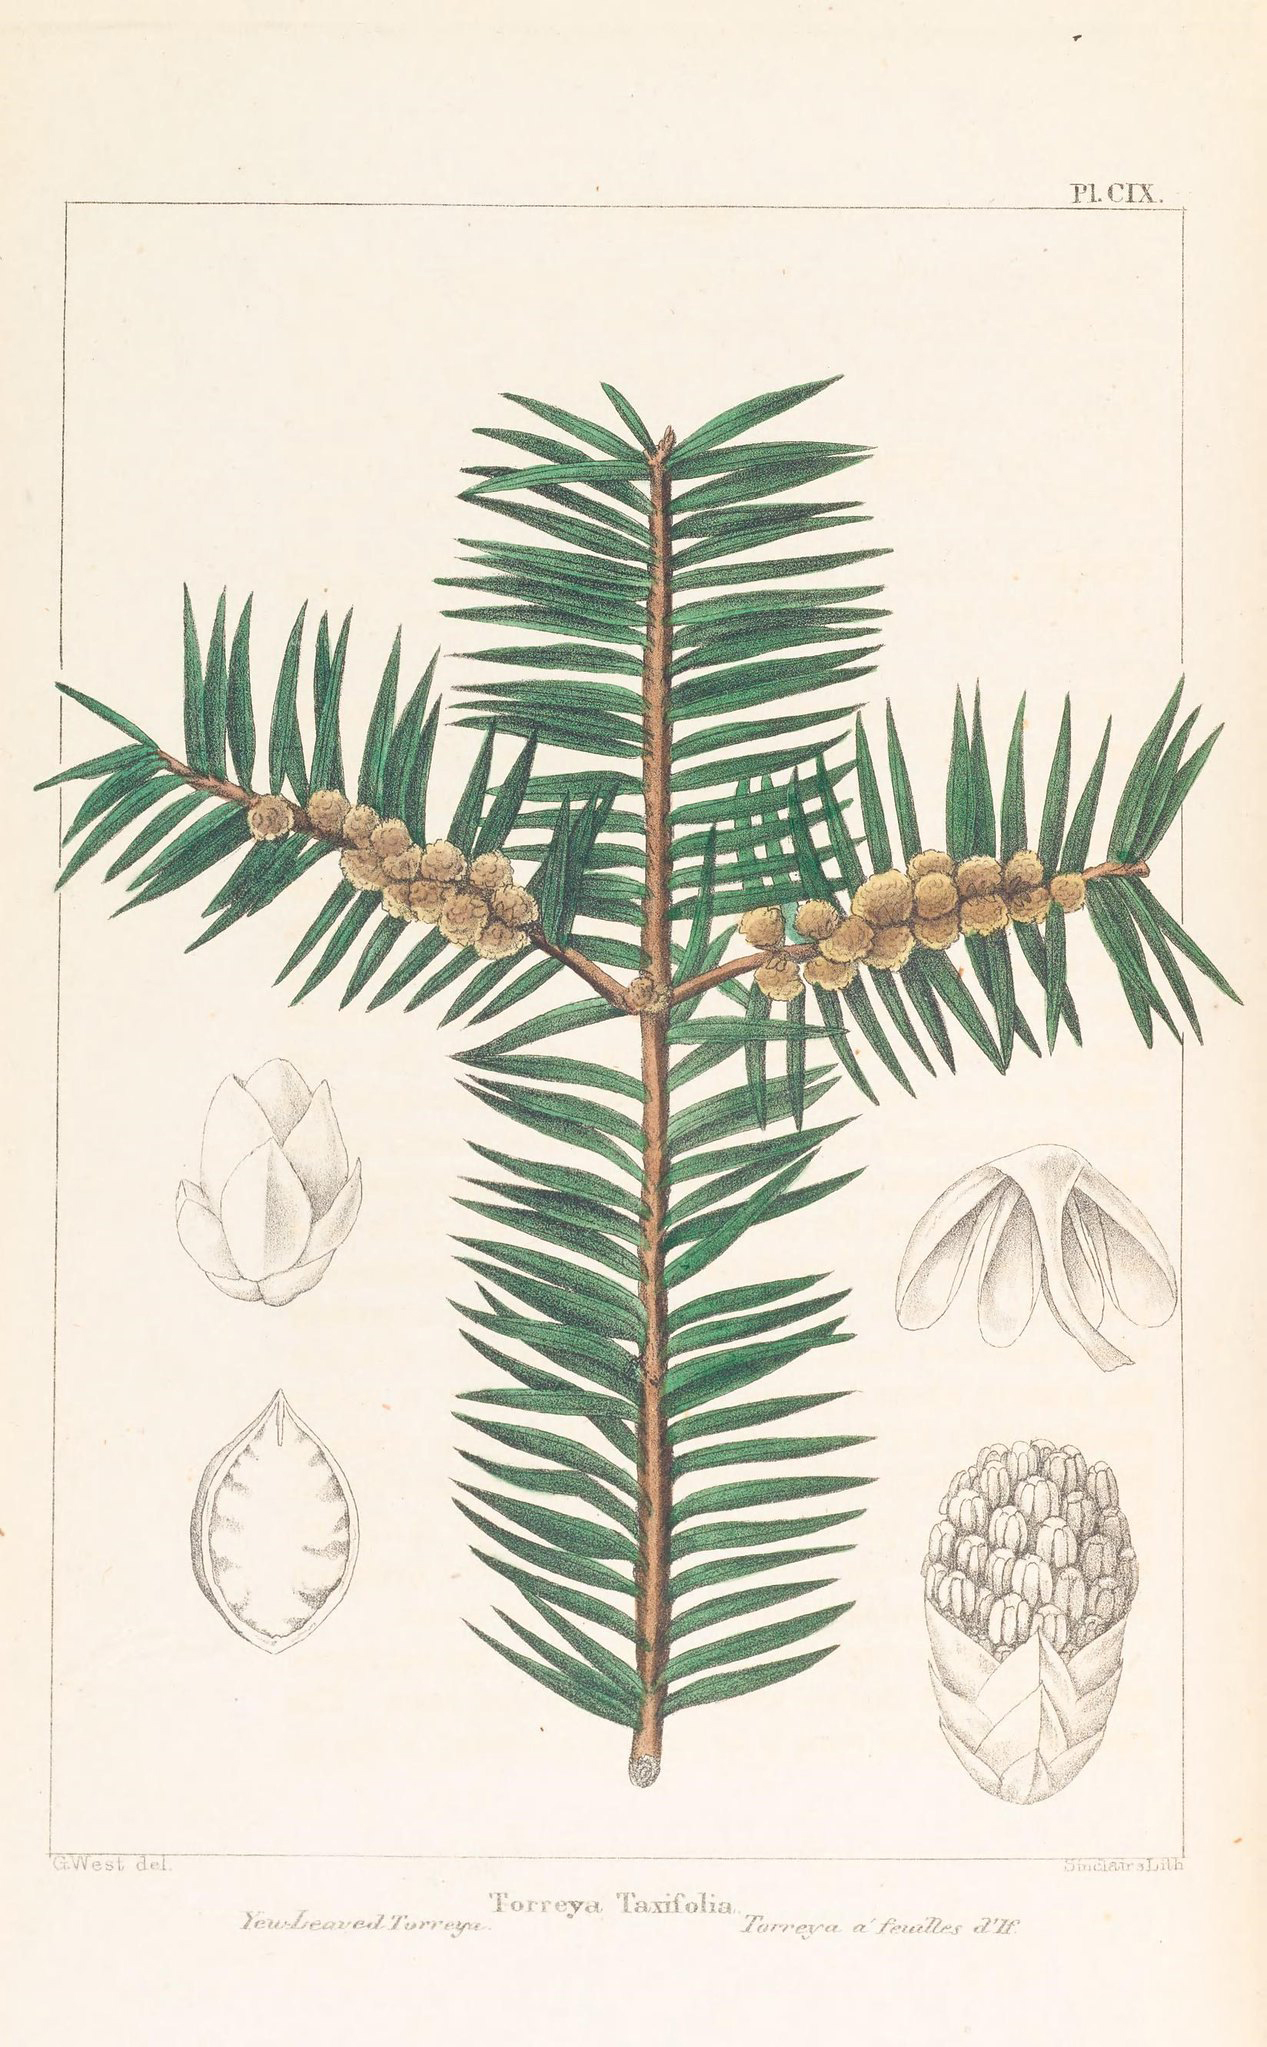 Colored drawing of a conifer tree branch with cones.